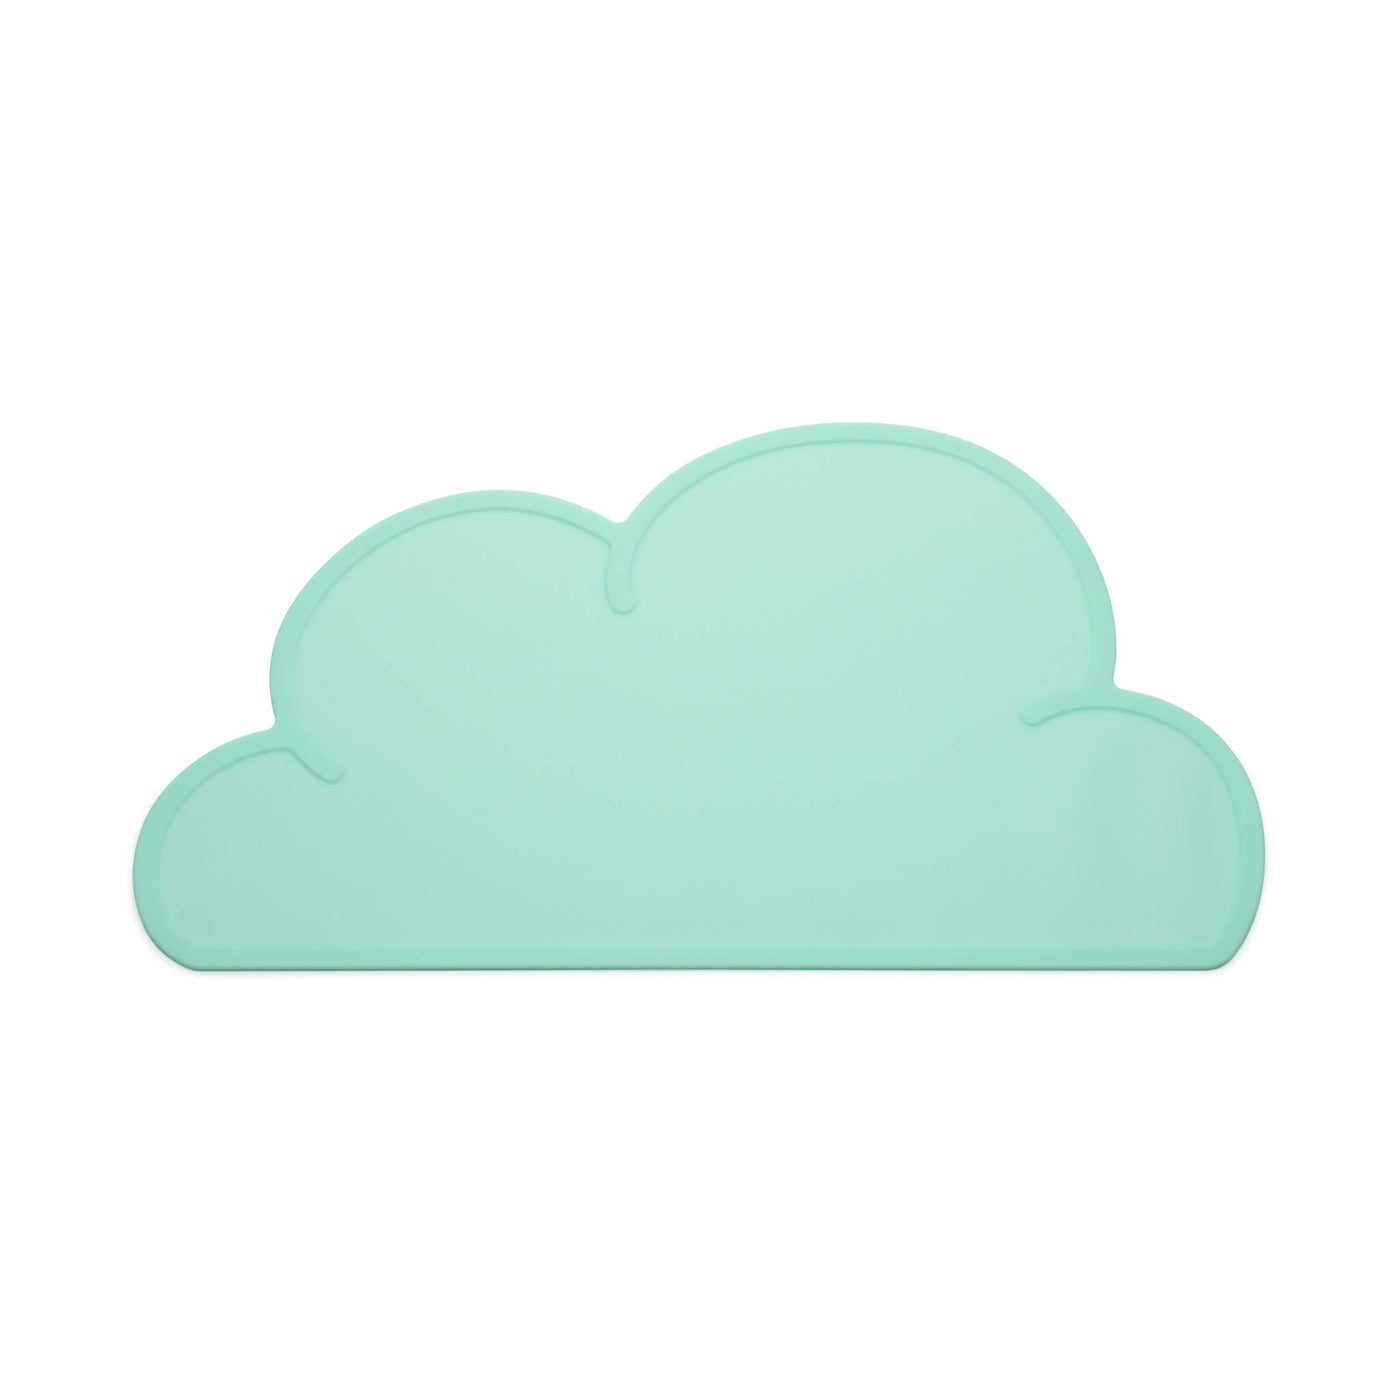 Cloud Placemat - Green